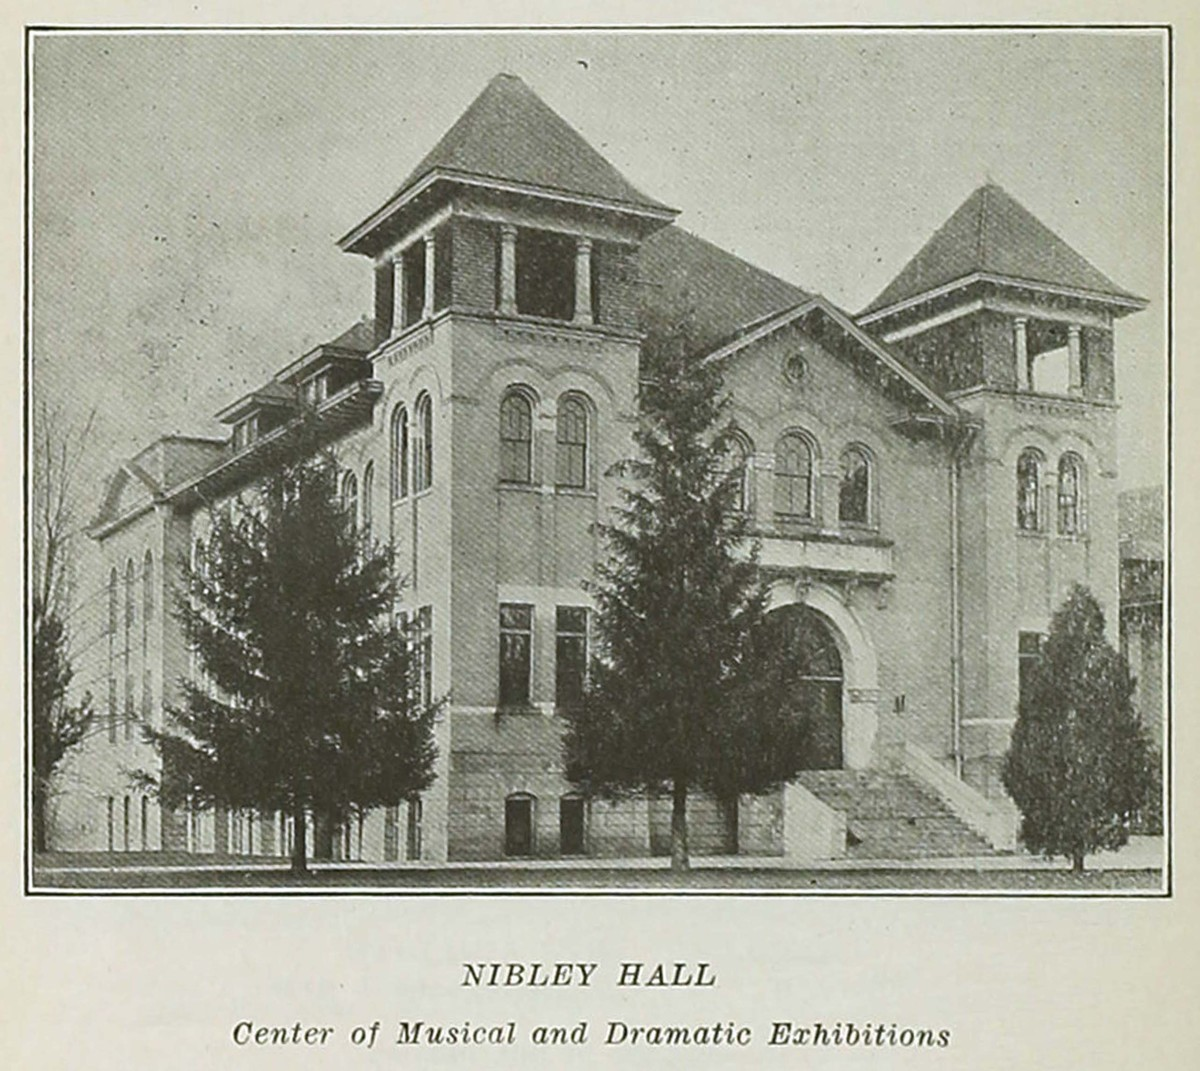 NIbley Hall